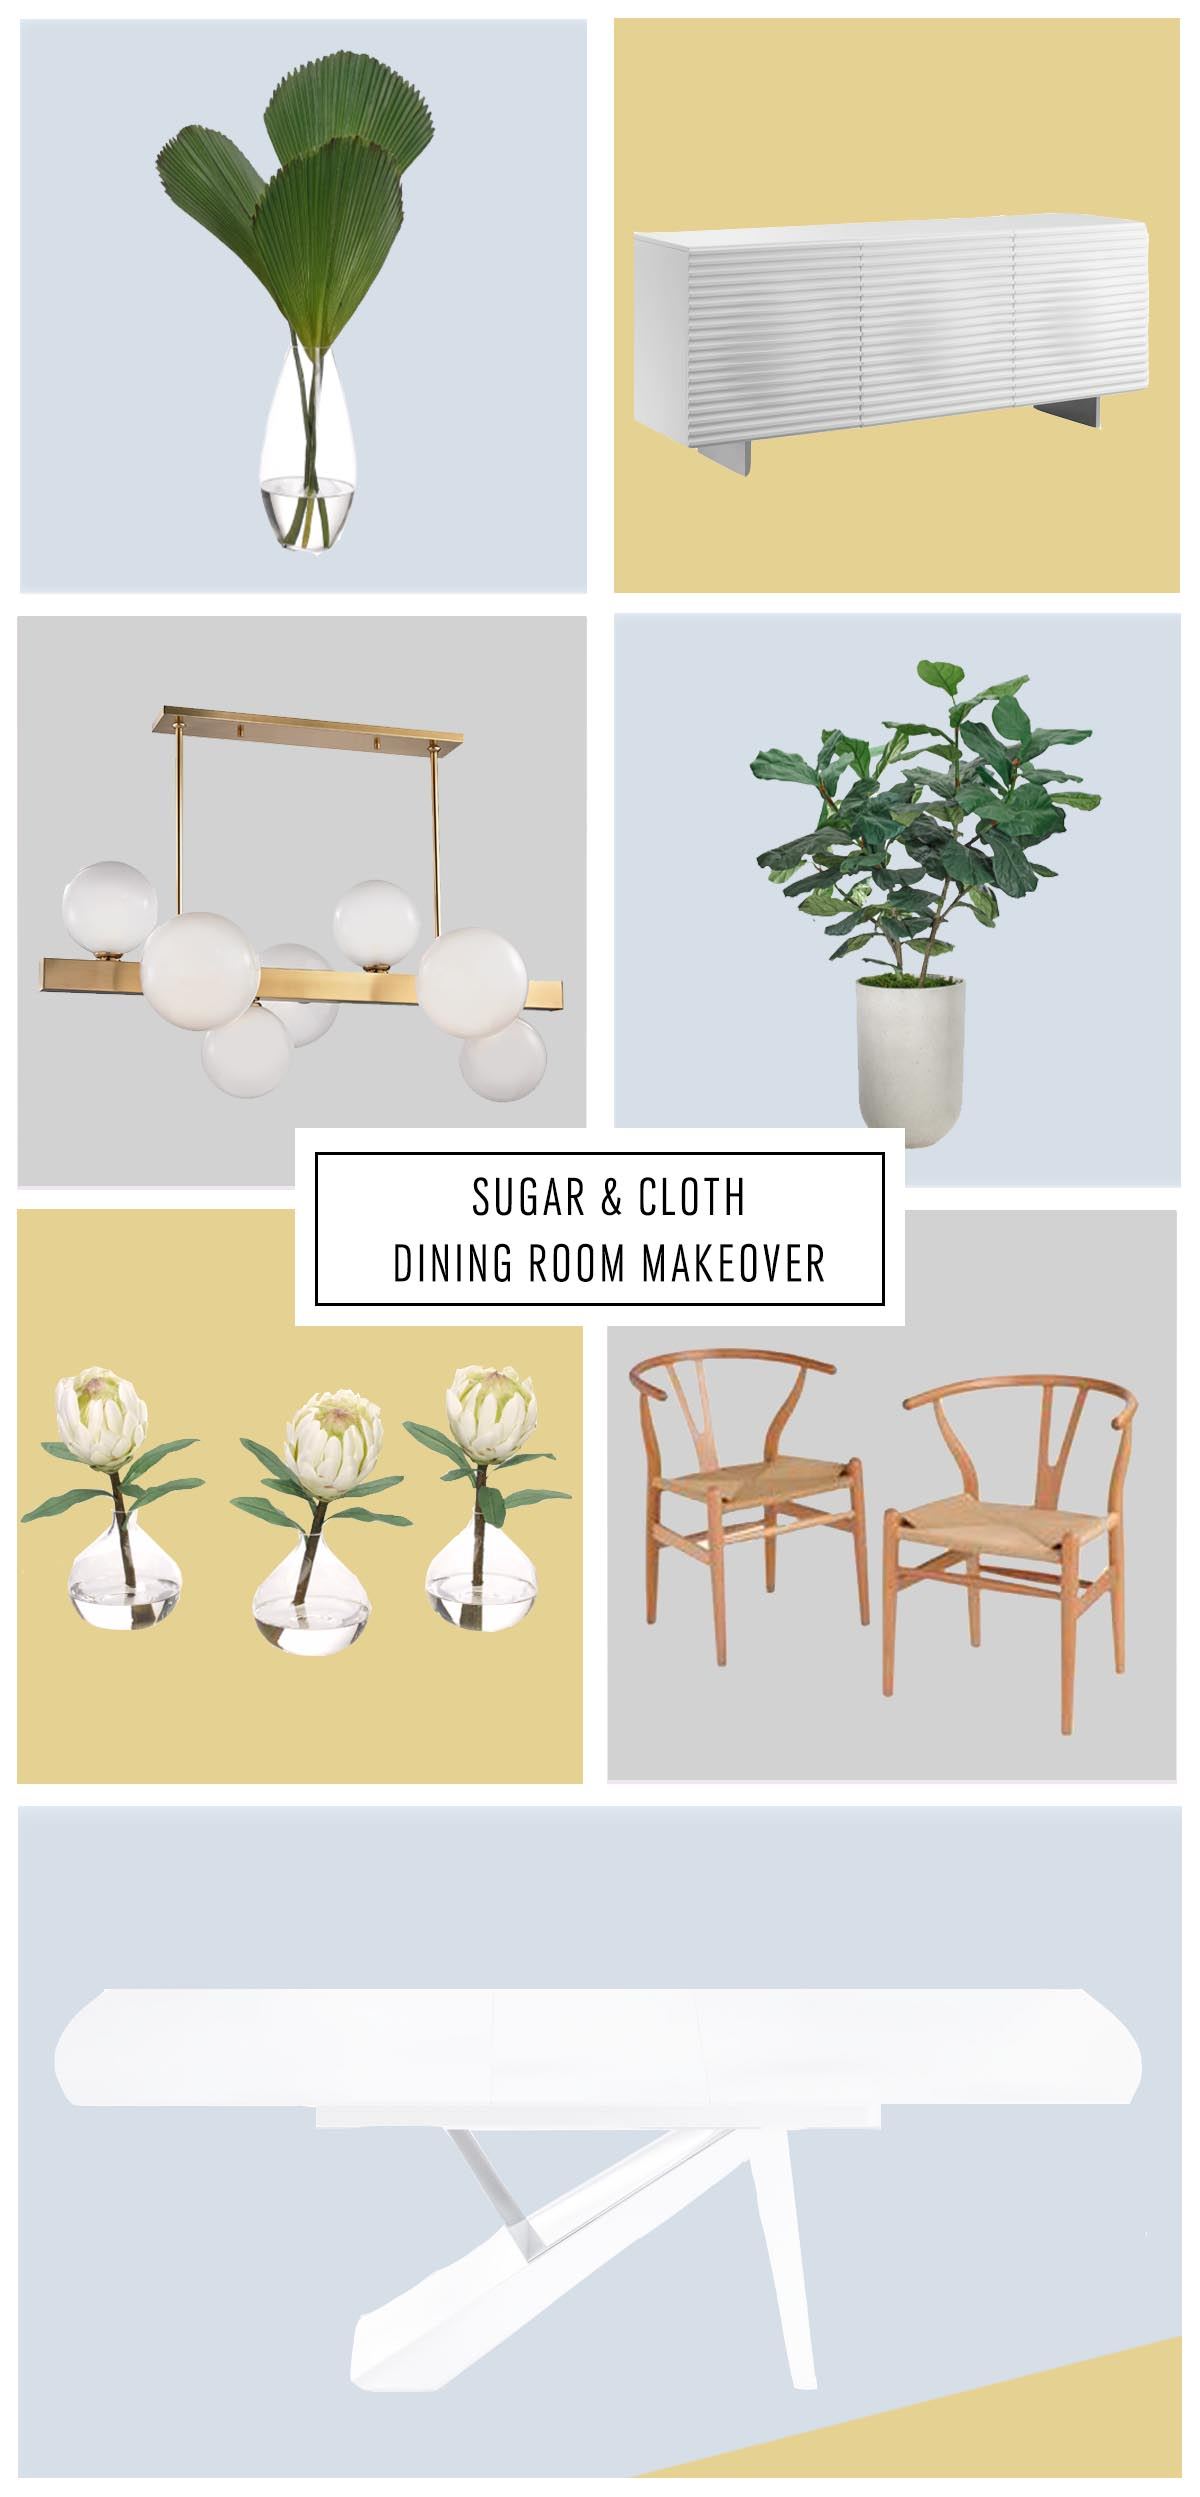 dining room furniture - One Room Challenge Week 3: The Dining Room Design Plan by top Houston lifestyle blogger Ashley Rose of Sugar & Cloth